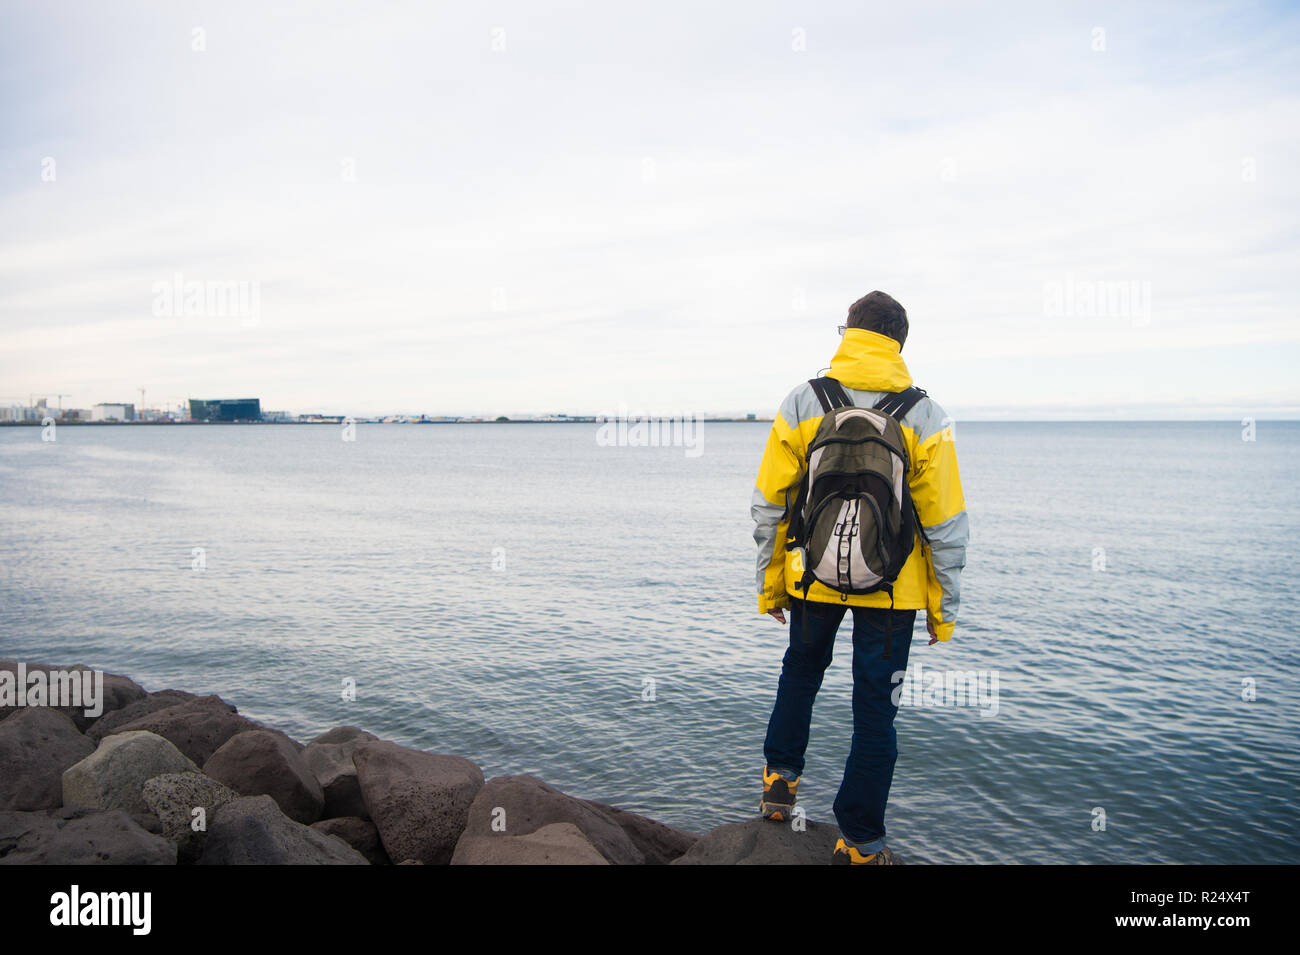 Tourist well equipment ready explore scandinavian or nordic country. Tourist traveller concept. Tourist on sea background. Man tourist wear warm protective clothes for cold climate conditions. - Stock Image